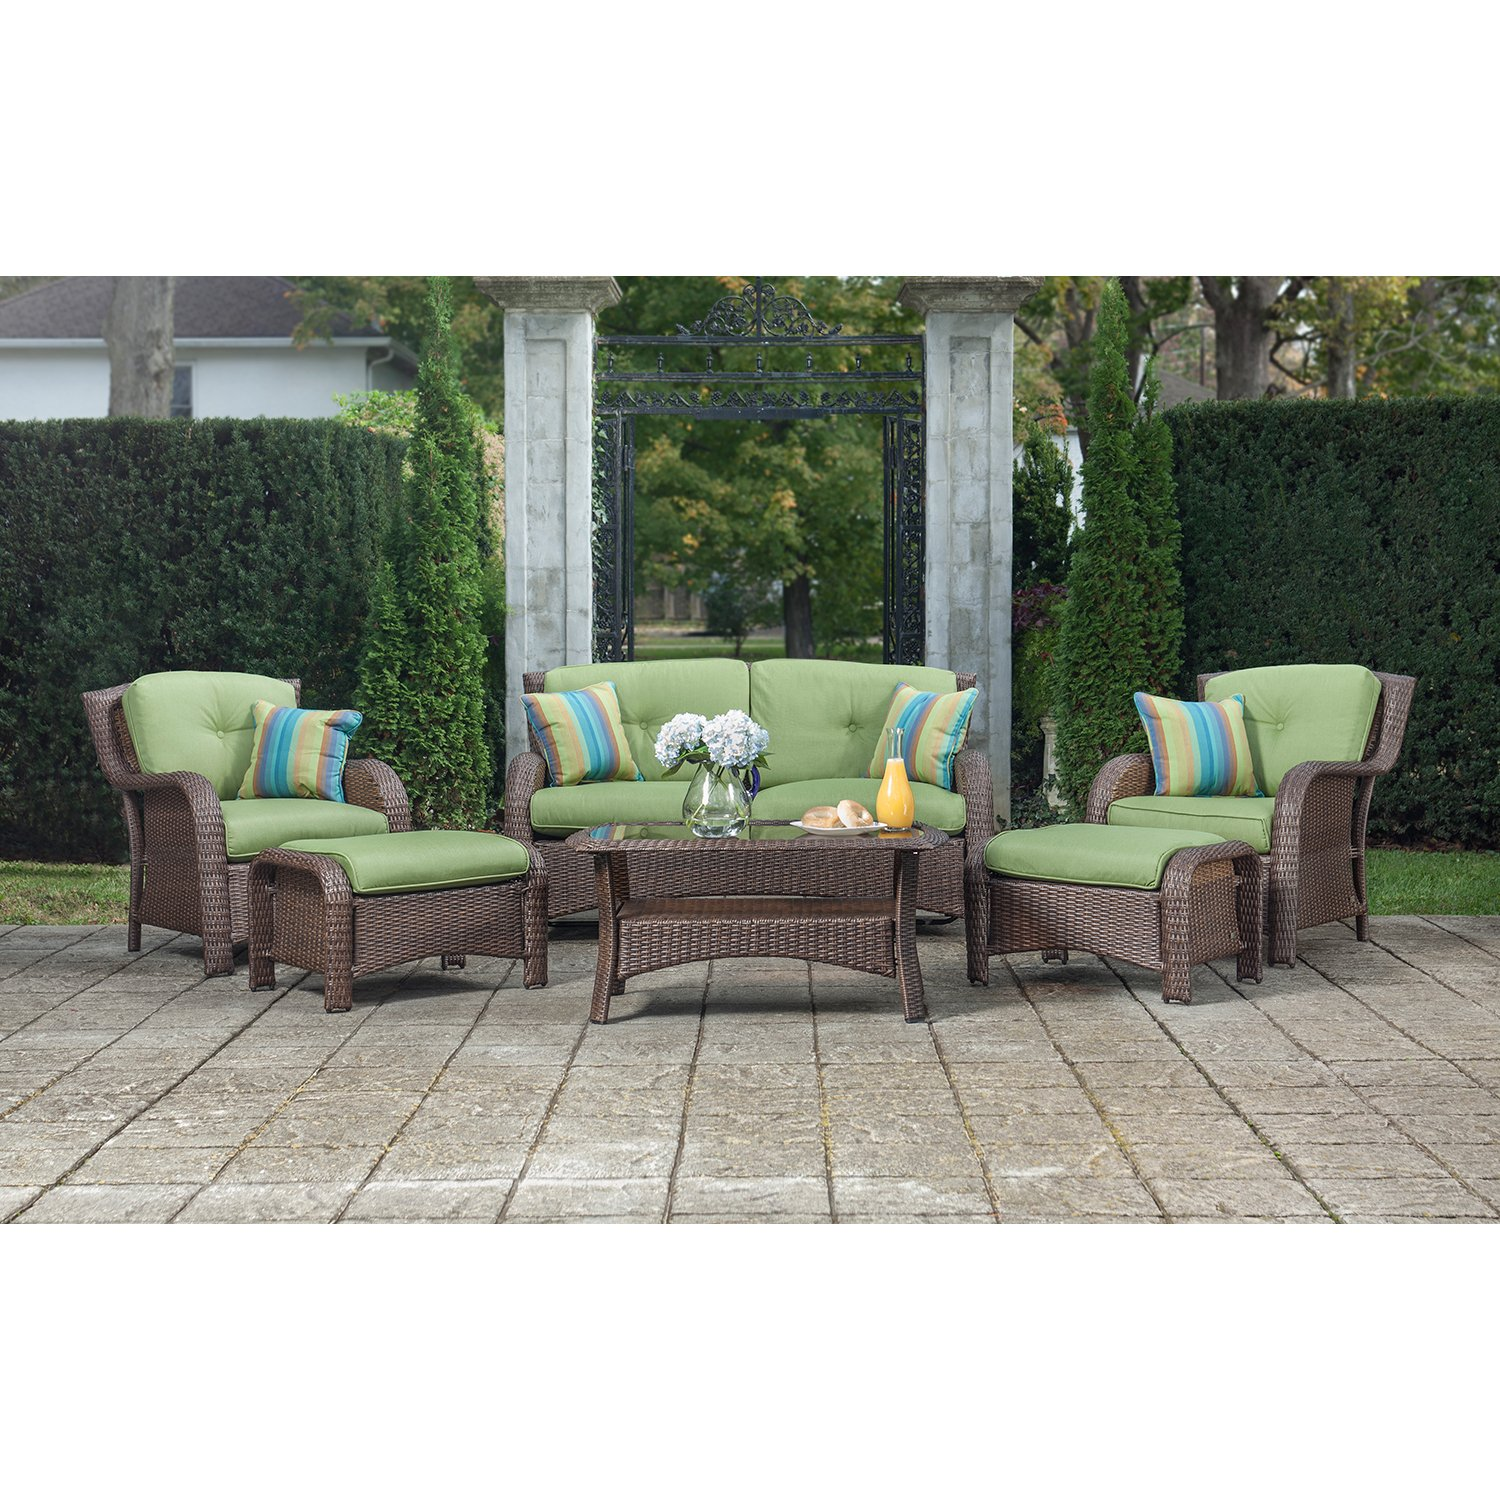 Amazon La Z Boy Outdoor Sawyer 6 Piece Resin Wicker Patio